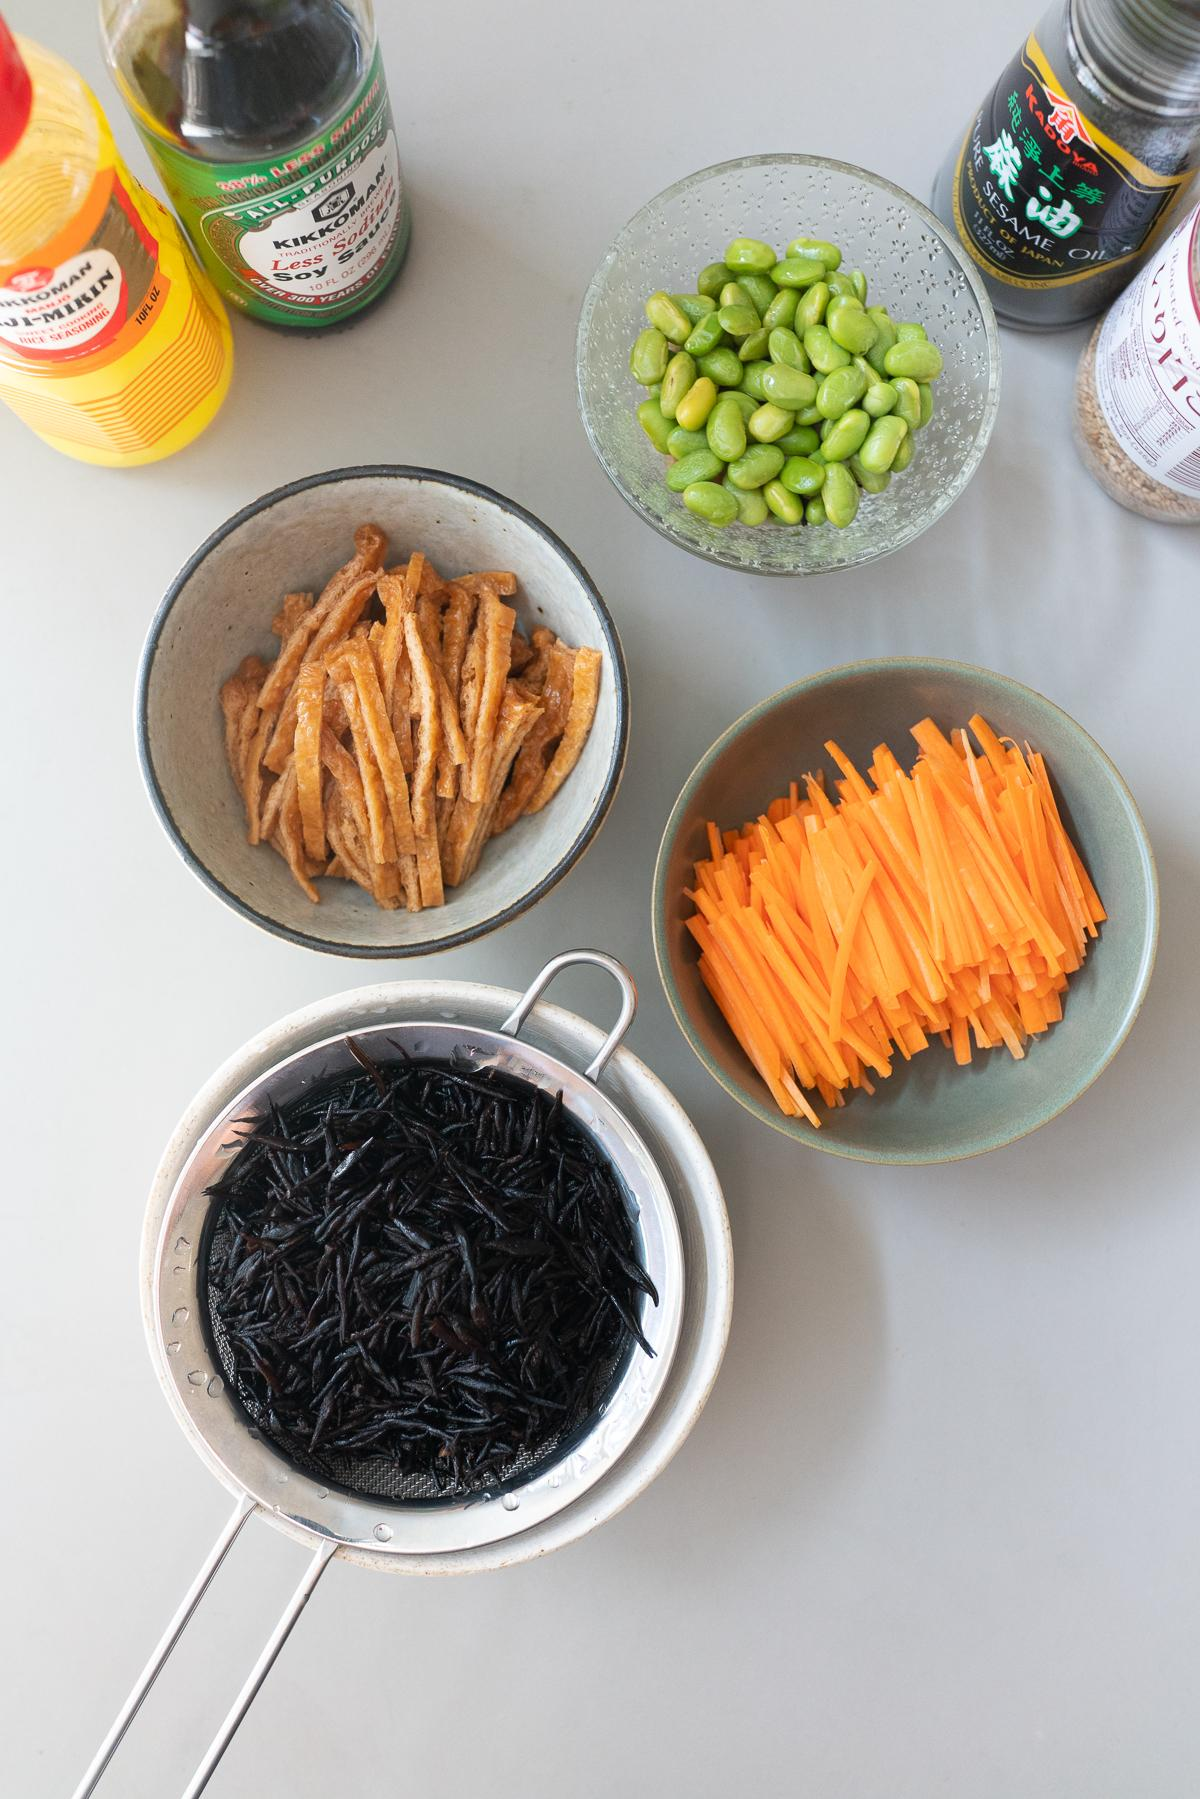 Ingredients for Hijiki Salad (dried hijiki, carrots, edamame, aburaage, soy sauce, mirin, sesame oil, and sesame seeds).